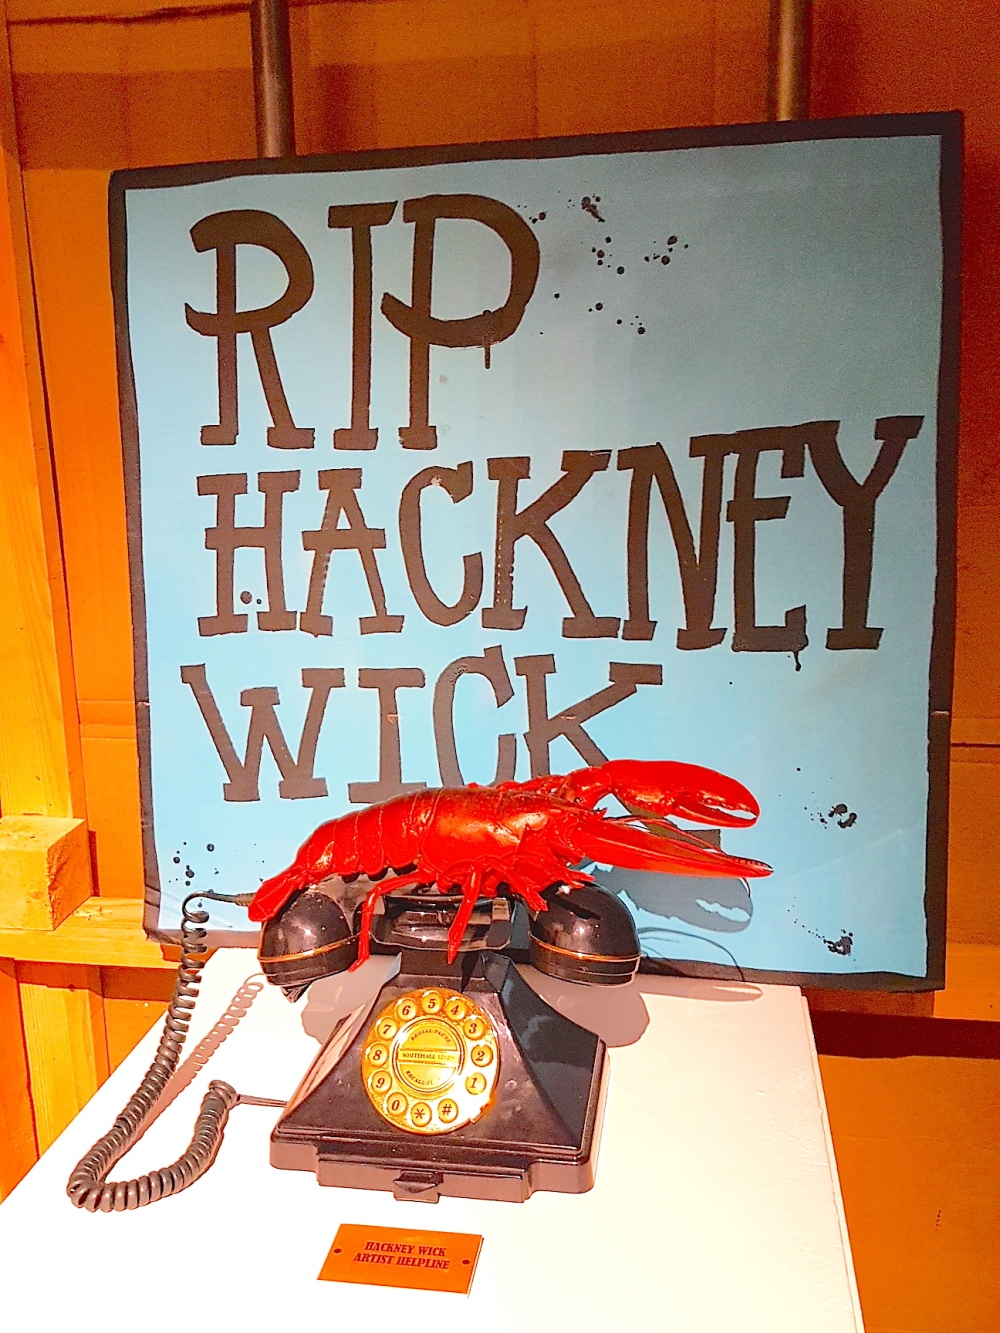 rip-hackney-wick-lobster-save-yourselves-small